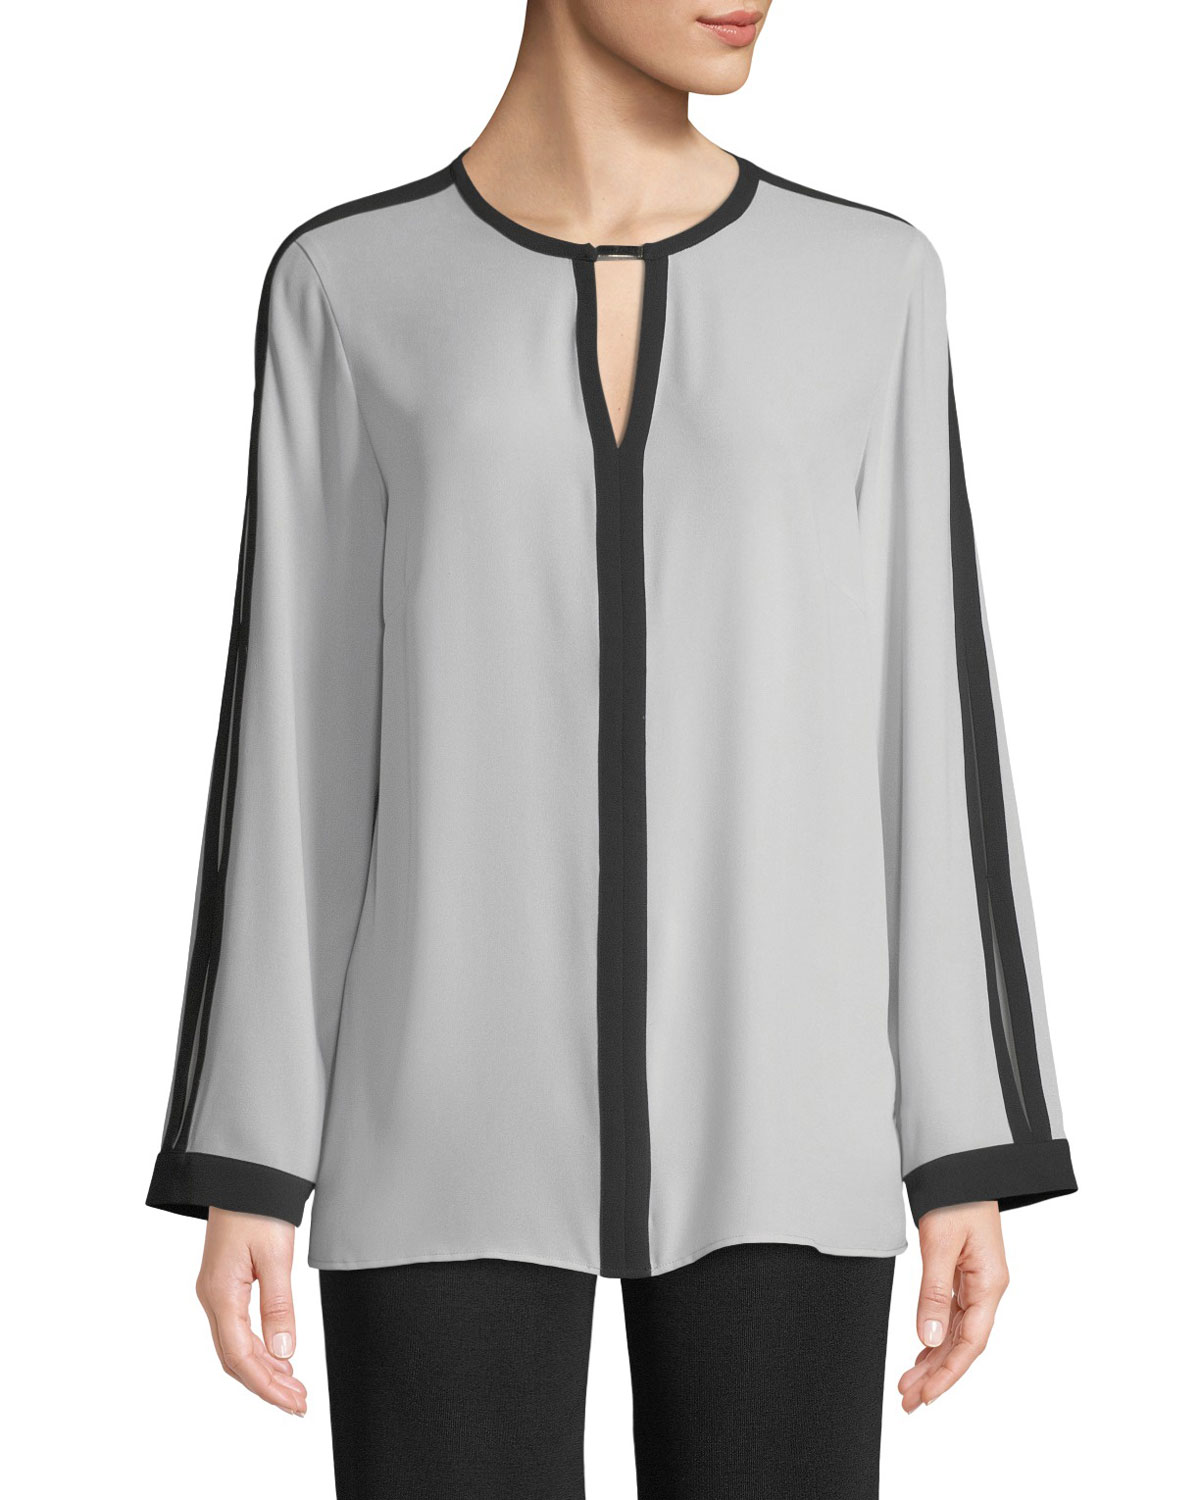 Silky Keyhole-Front Blouse w/ Contrast Trim, Marble/Black